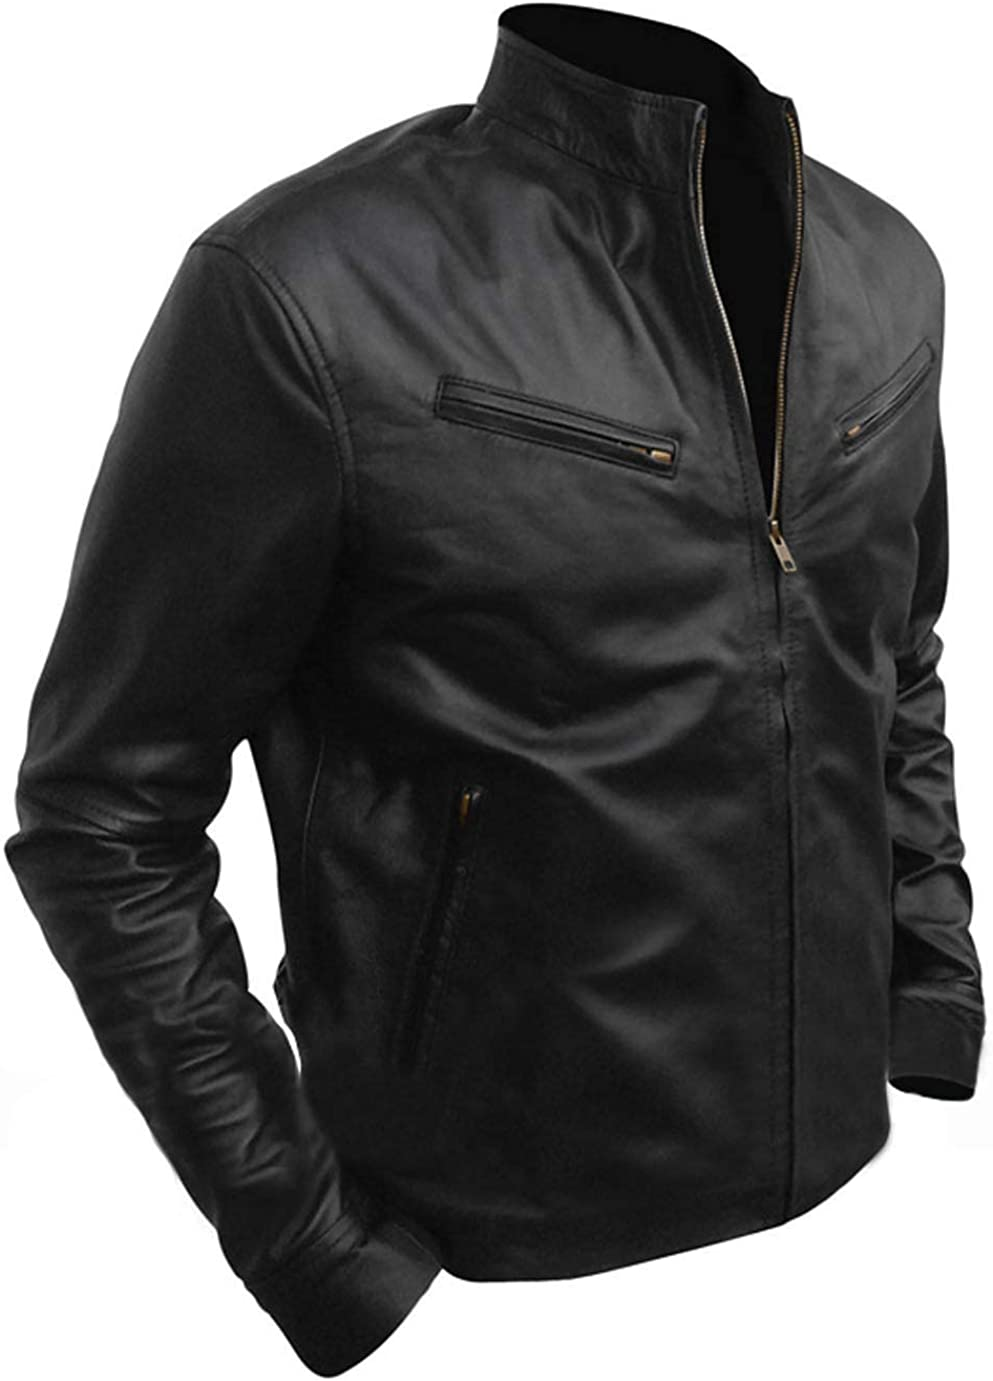 Chase Squad Fast /& Furious 6 Thriller Vin Diesel Faux Leather Jacket Vin Diesel Leather Jacket Collection